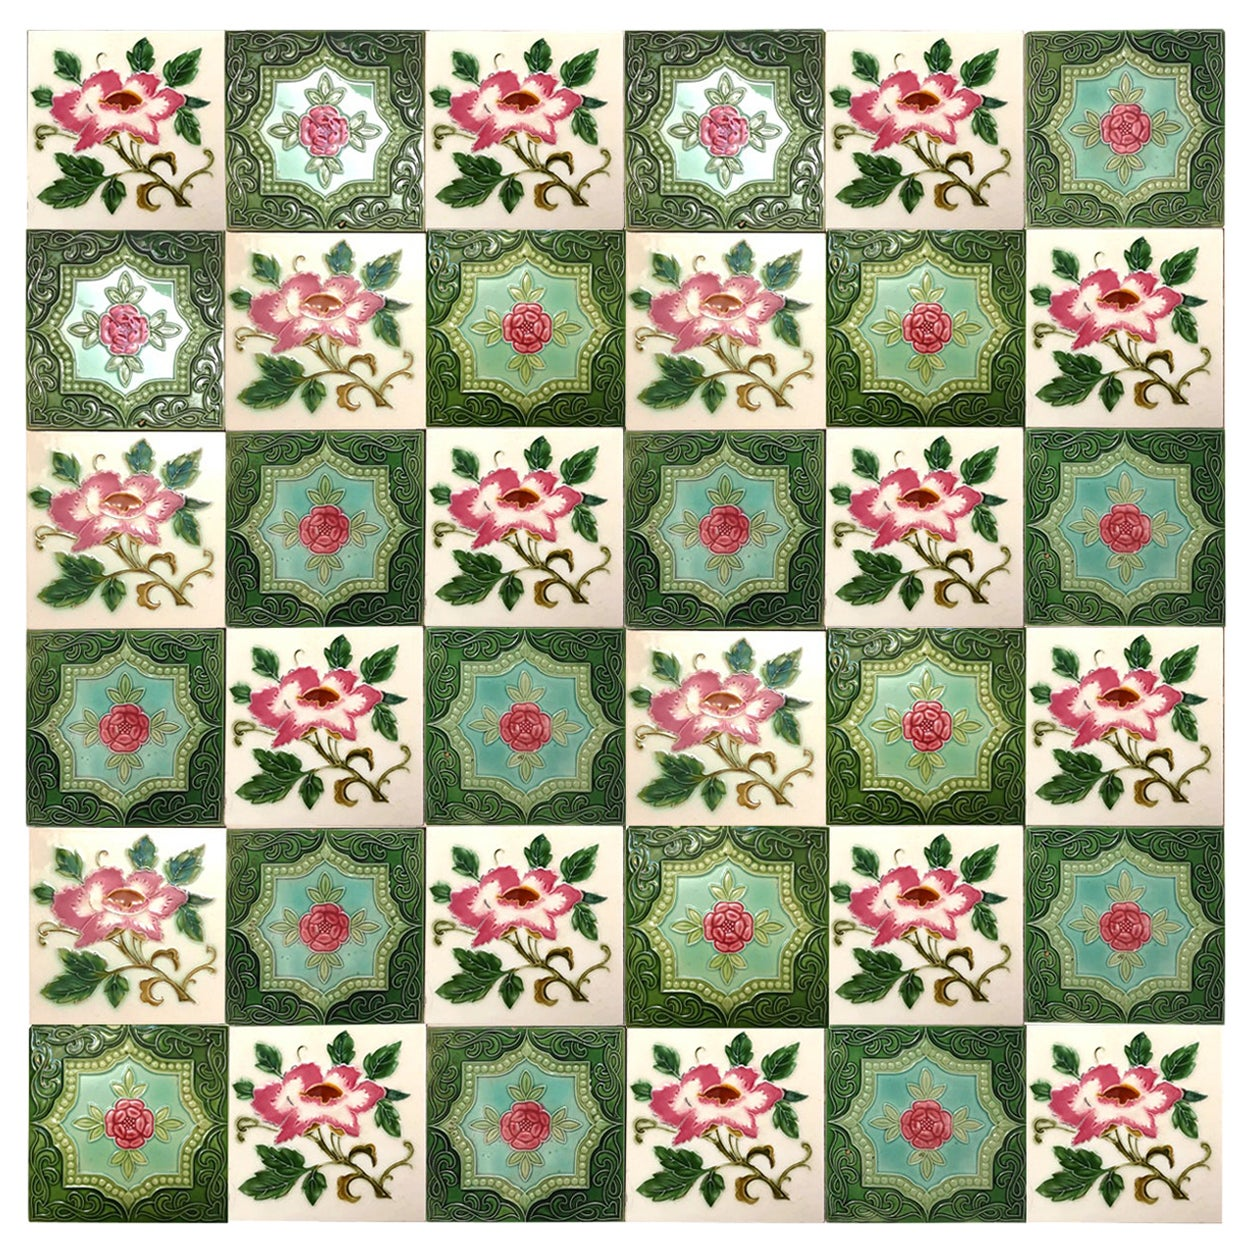 1 of the 36 Mixed Authentic Glazed Art Nouveau Relief Tiles Rose, Belga,  1930s